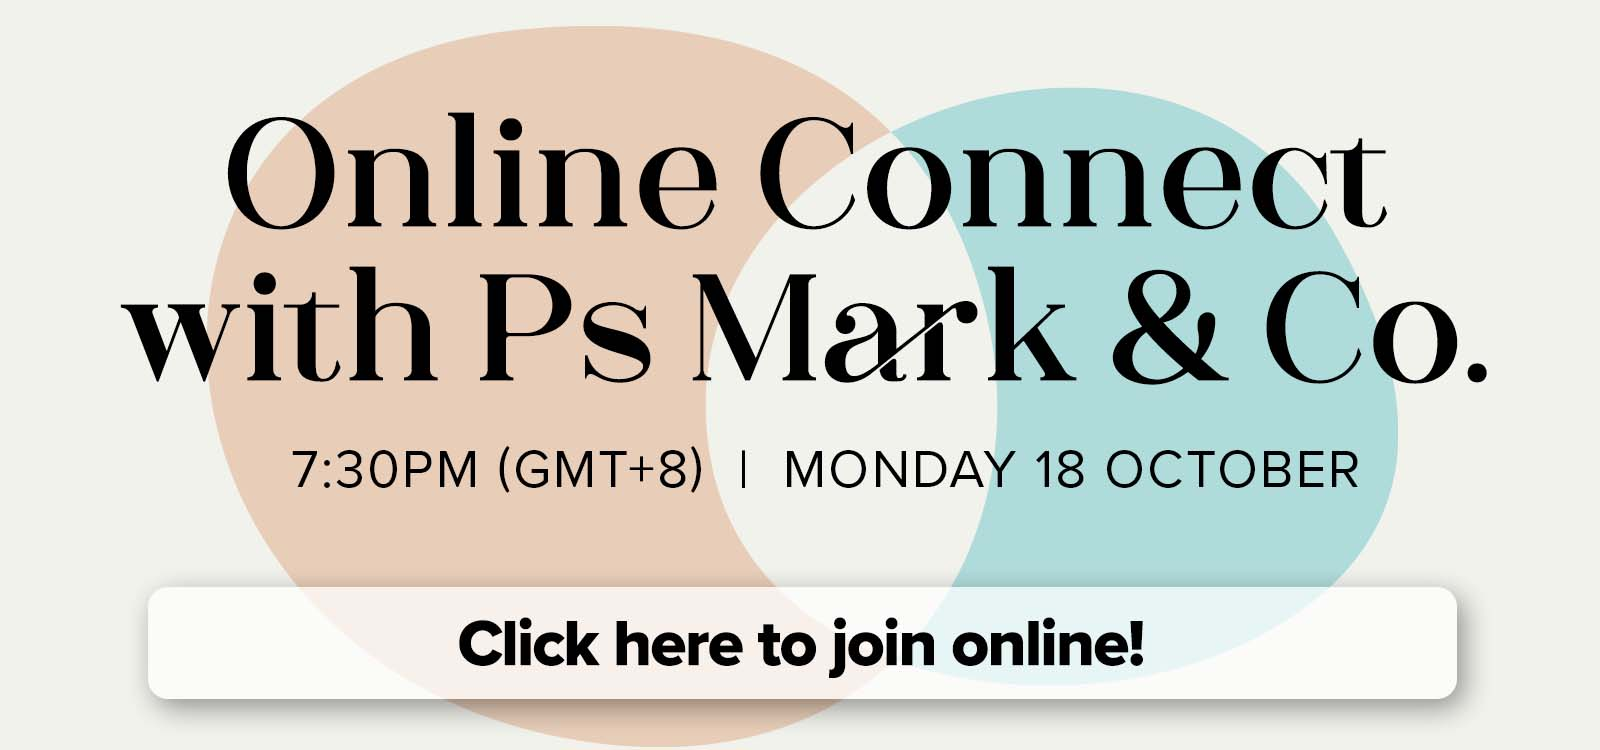 Click here to join Online Connect with Ps. Mark & Co.!